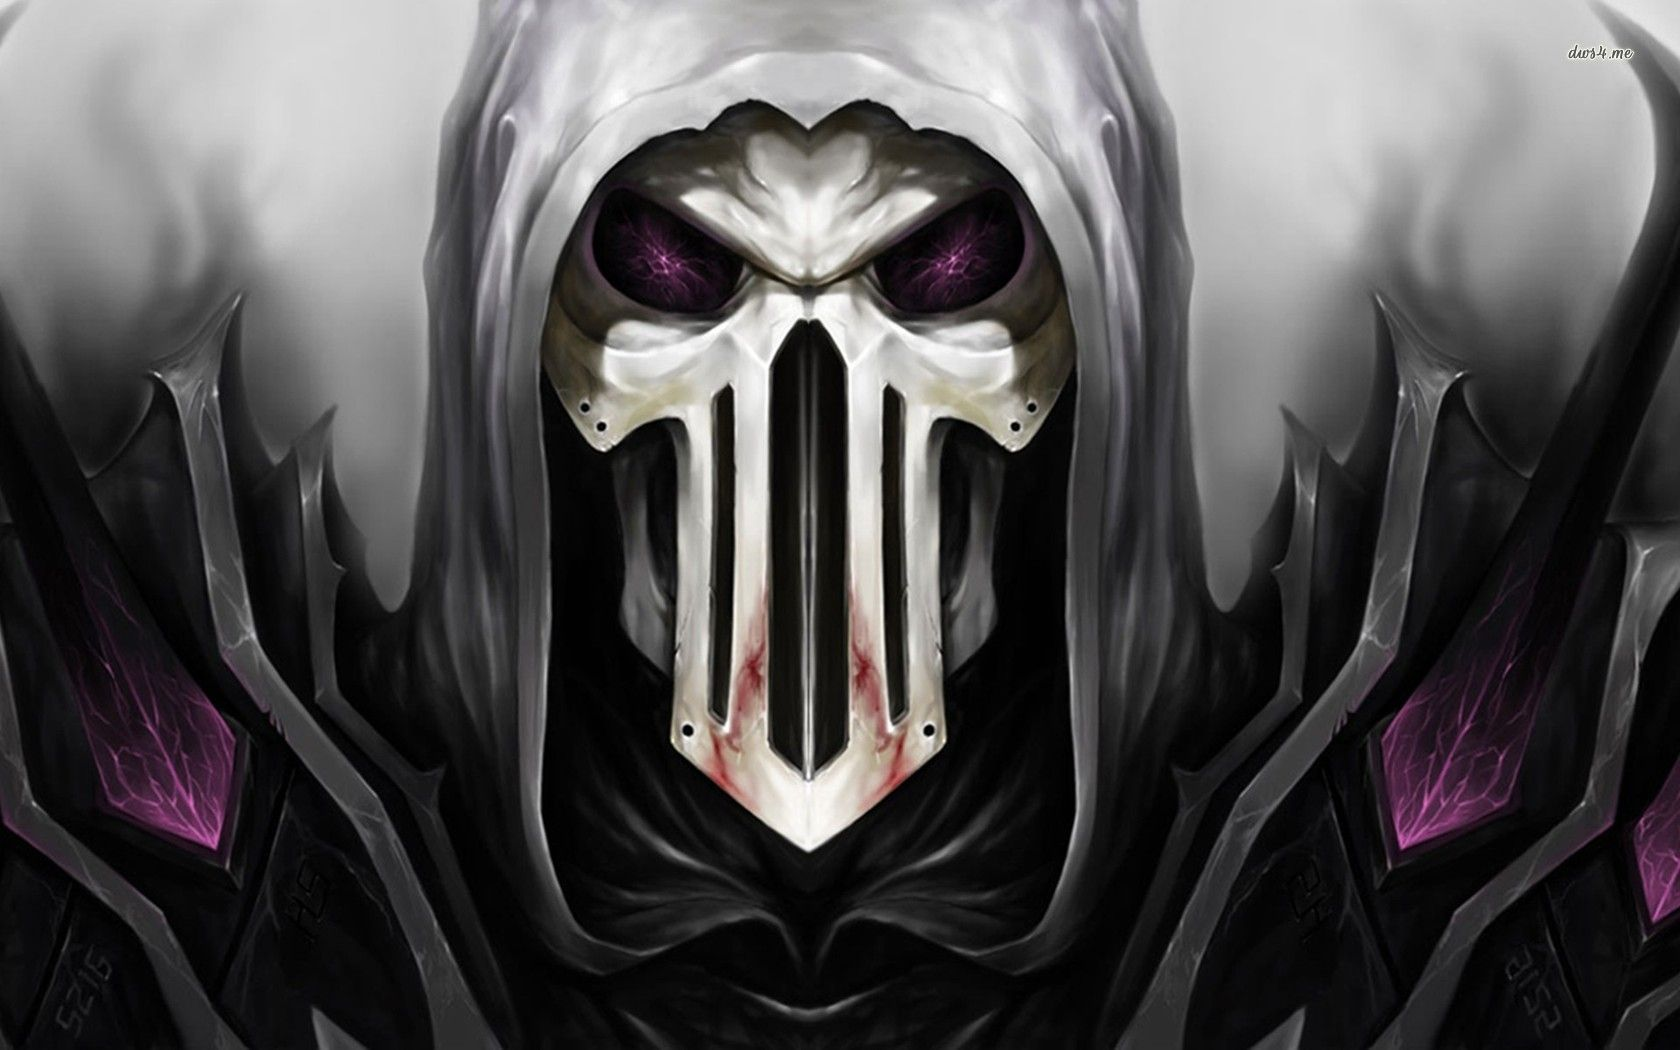 To Download or Set this Free Undead Hooded Skull Wallpaper